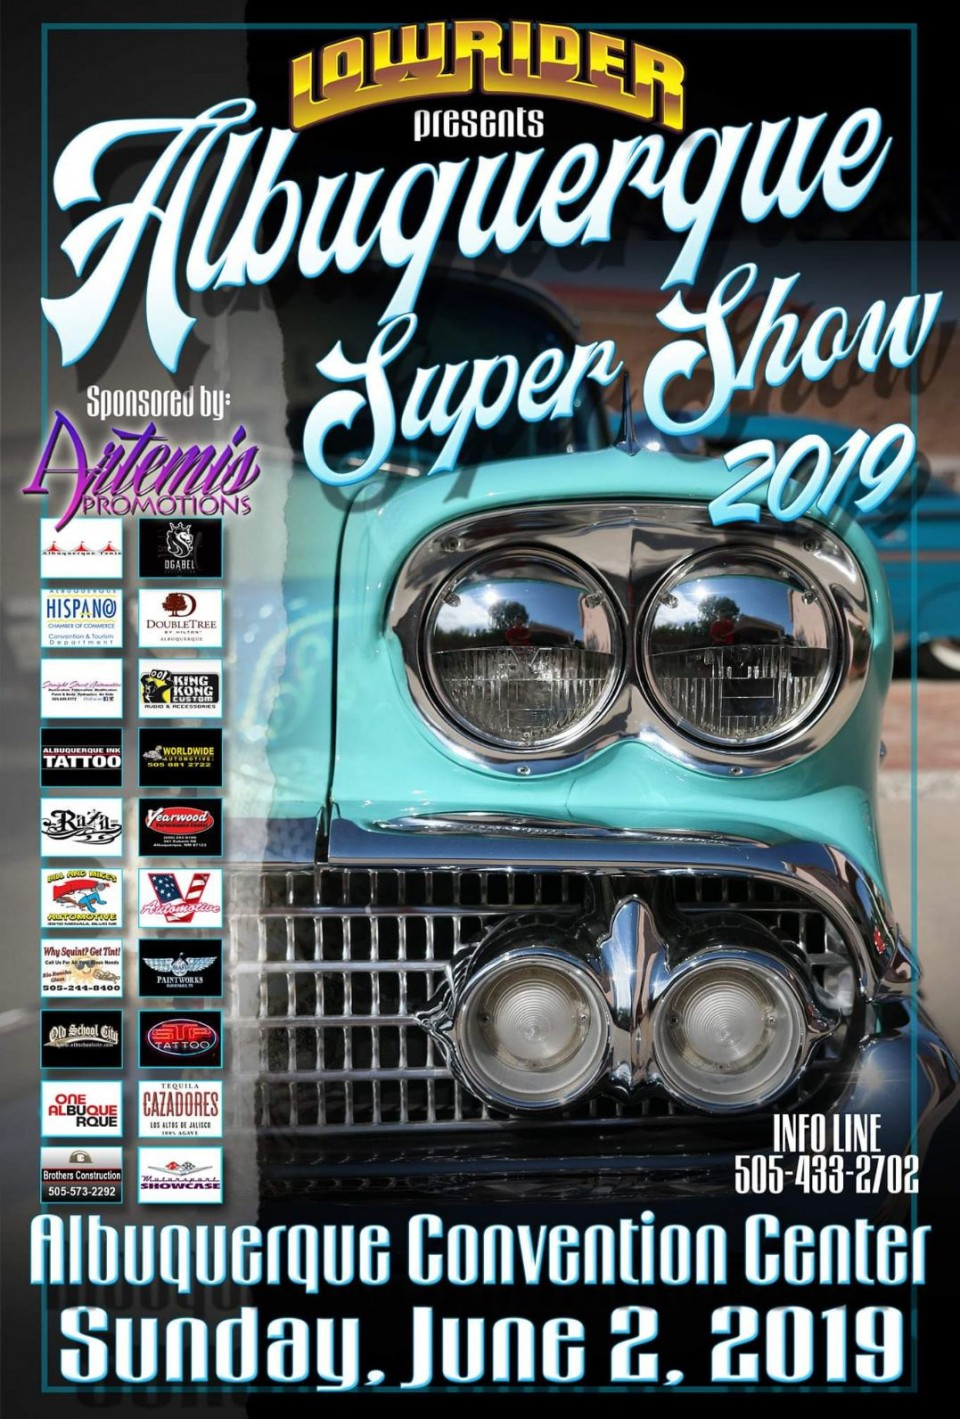 Up next...Albuquerque Super Show. Register now at https://motorsportshowcase.com/index.php/msblvd/events-calendar/viewevent/72-2019-albuquerque-super-show